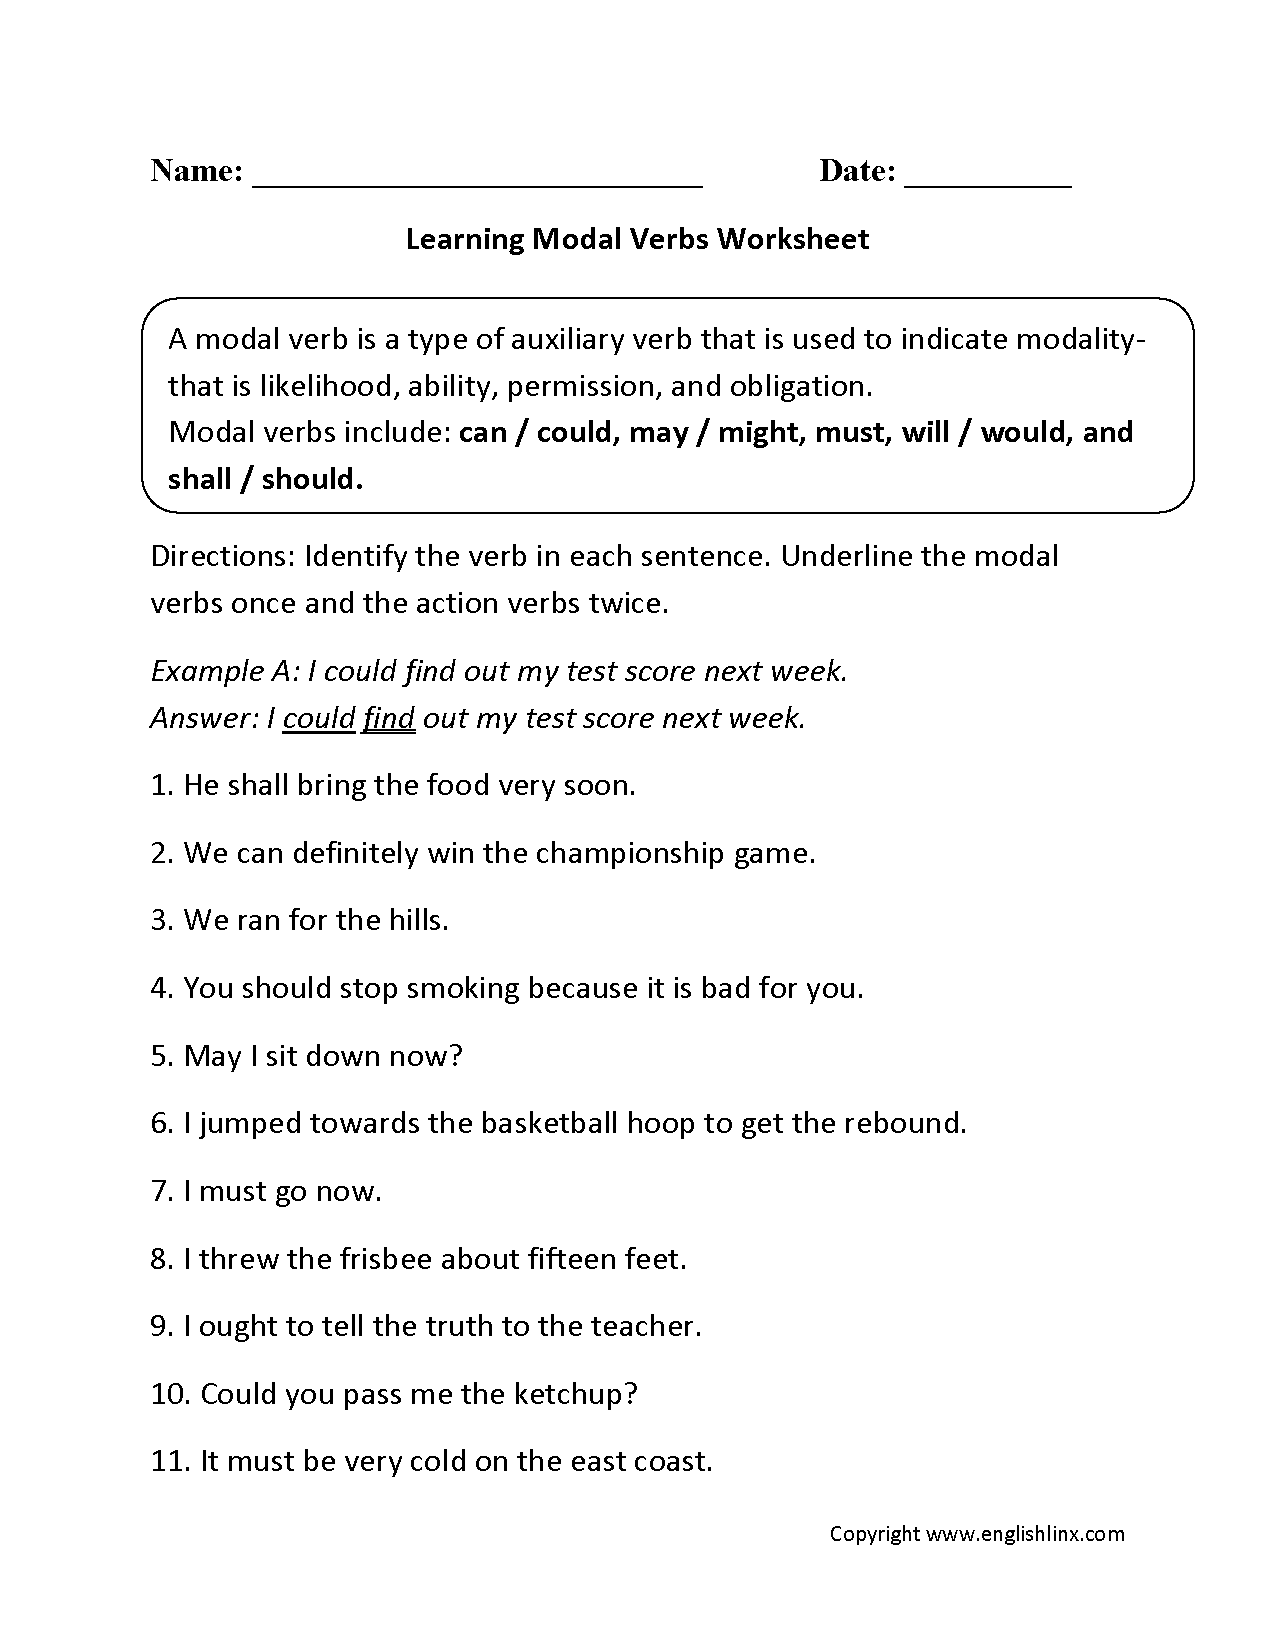 Learning Modal Verbs Worksheets